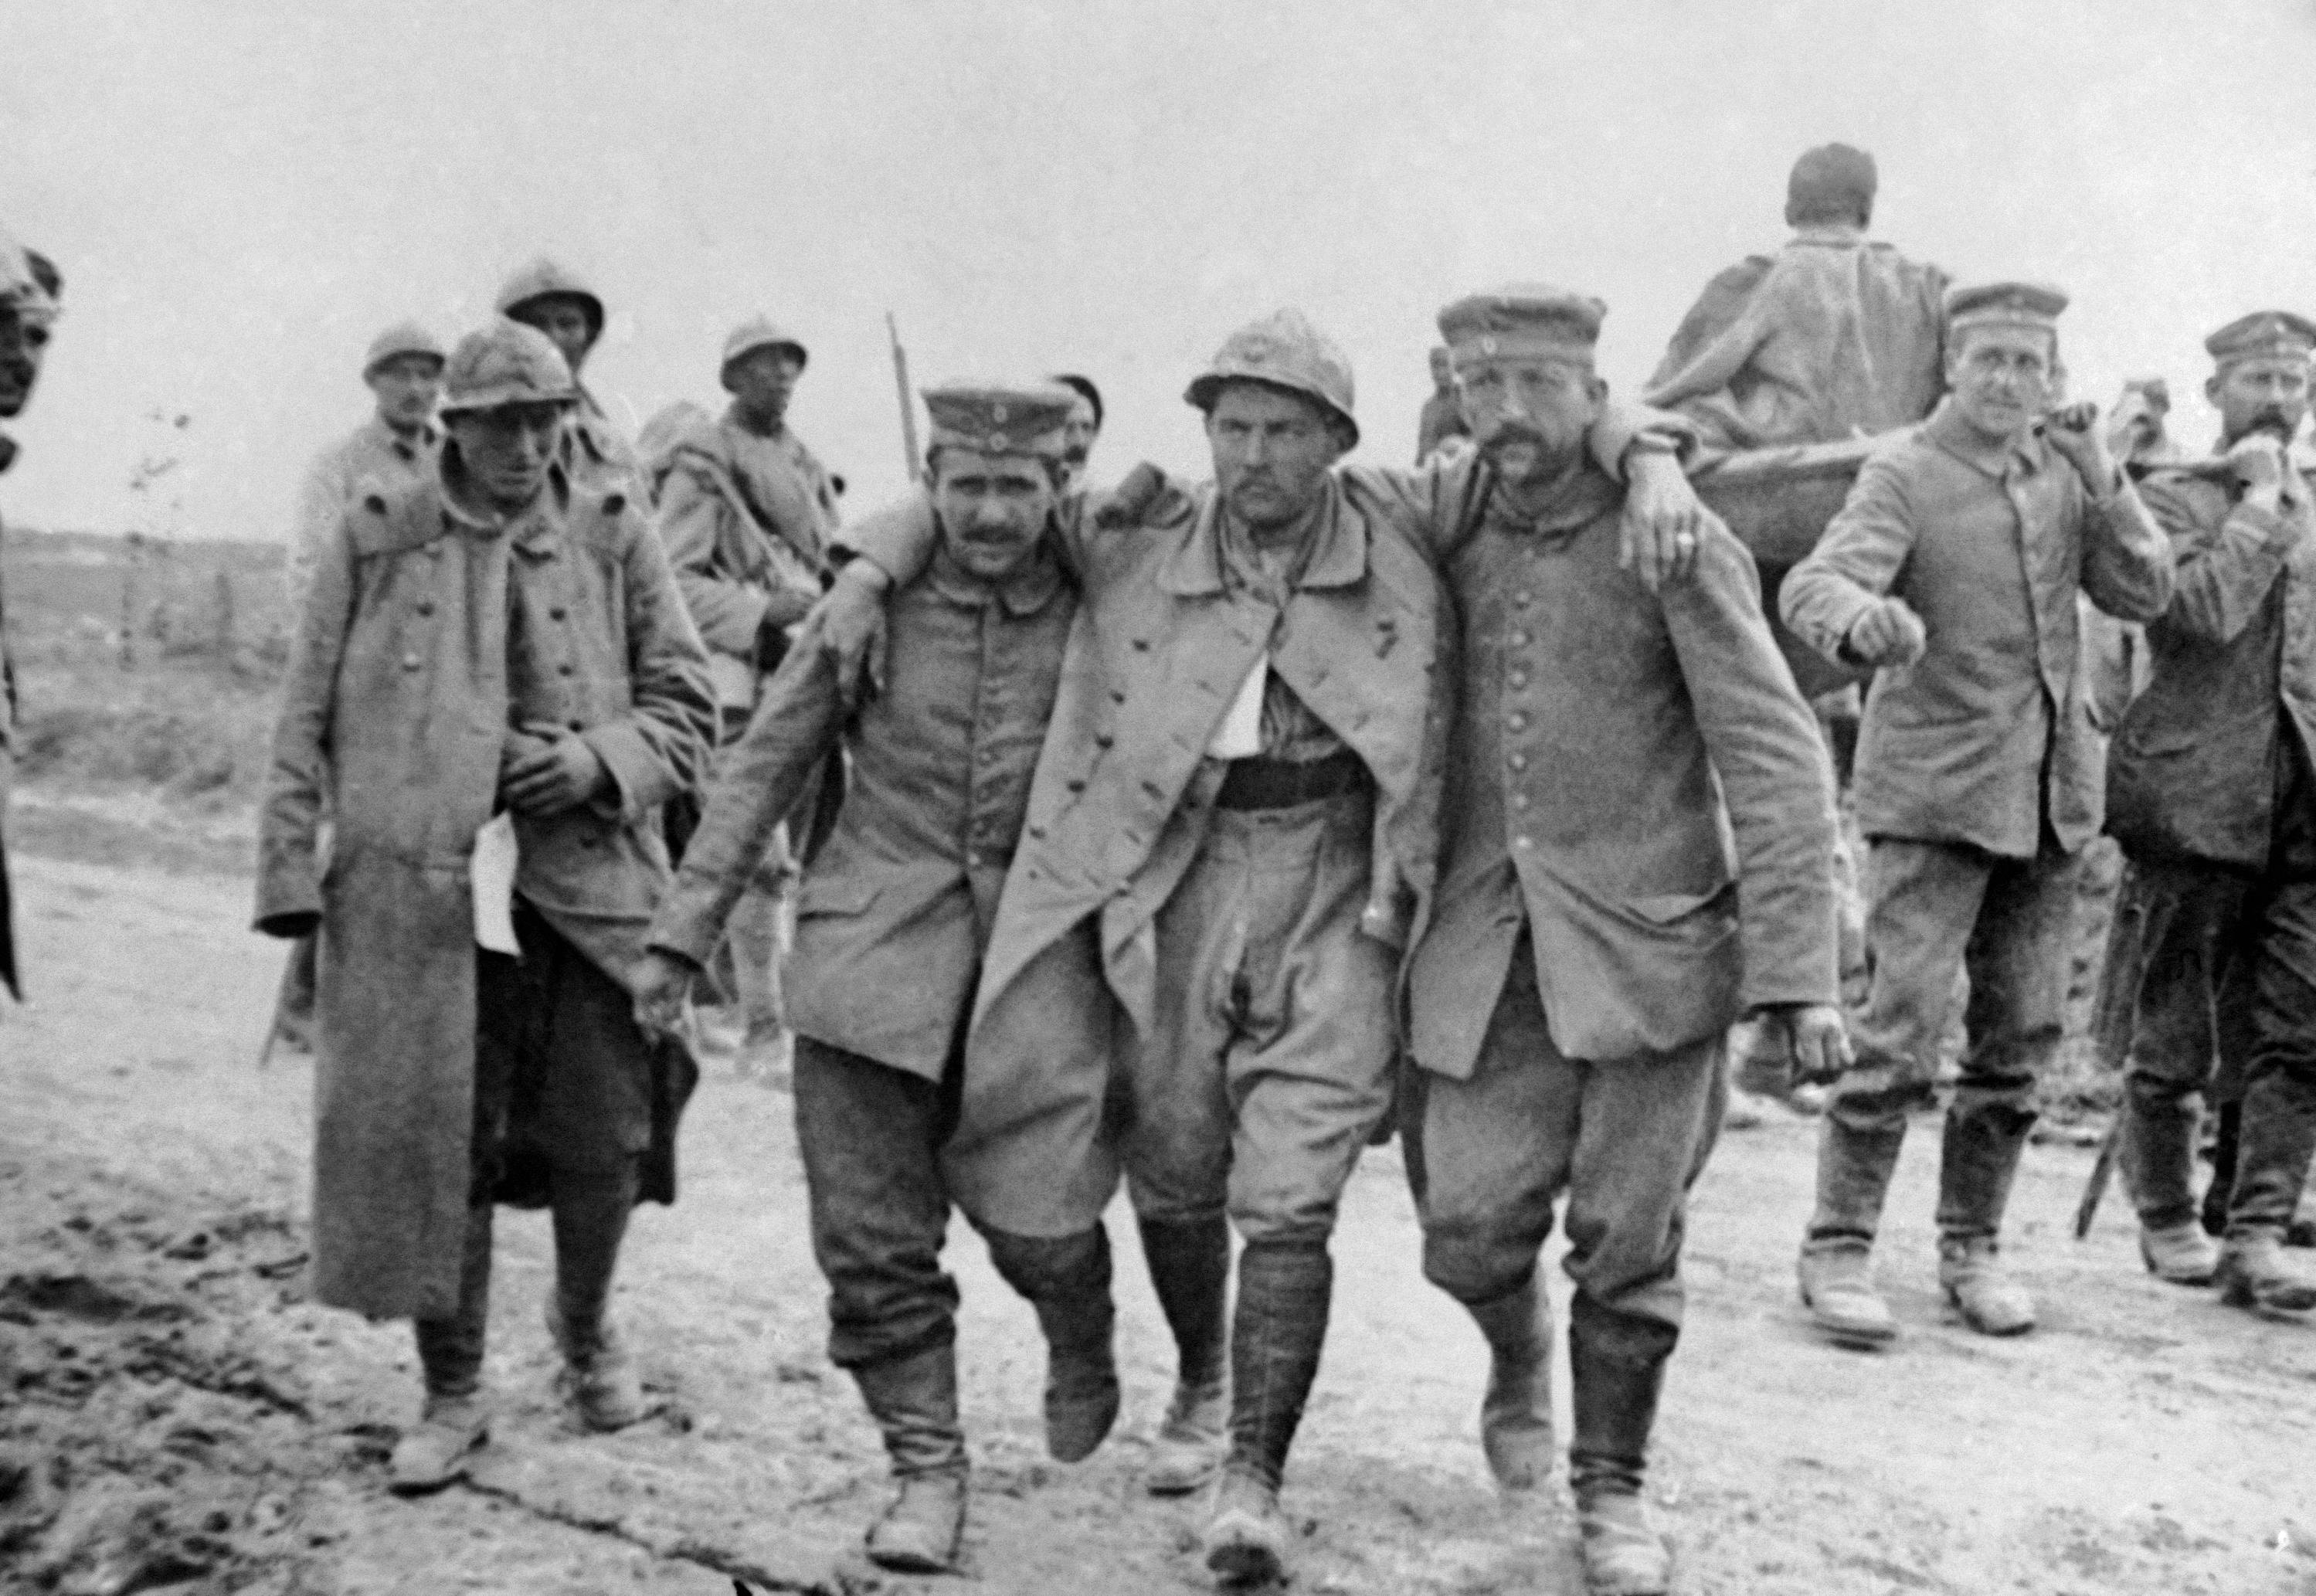 57 OF 100: In this undated file photo, French soldiers carry the wounded during the World War I Battle of the Somme, France.